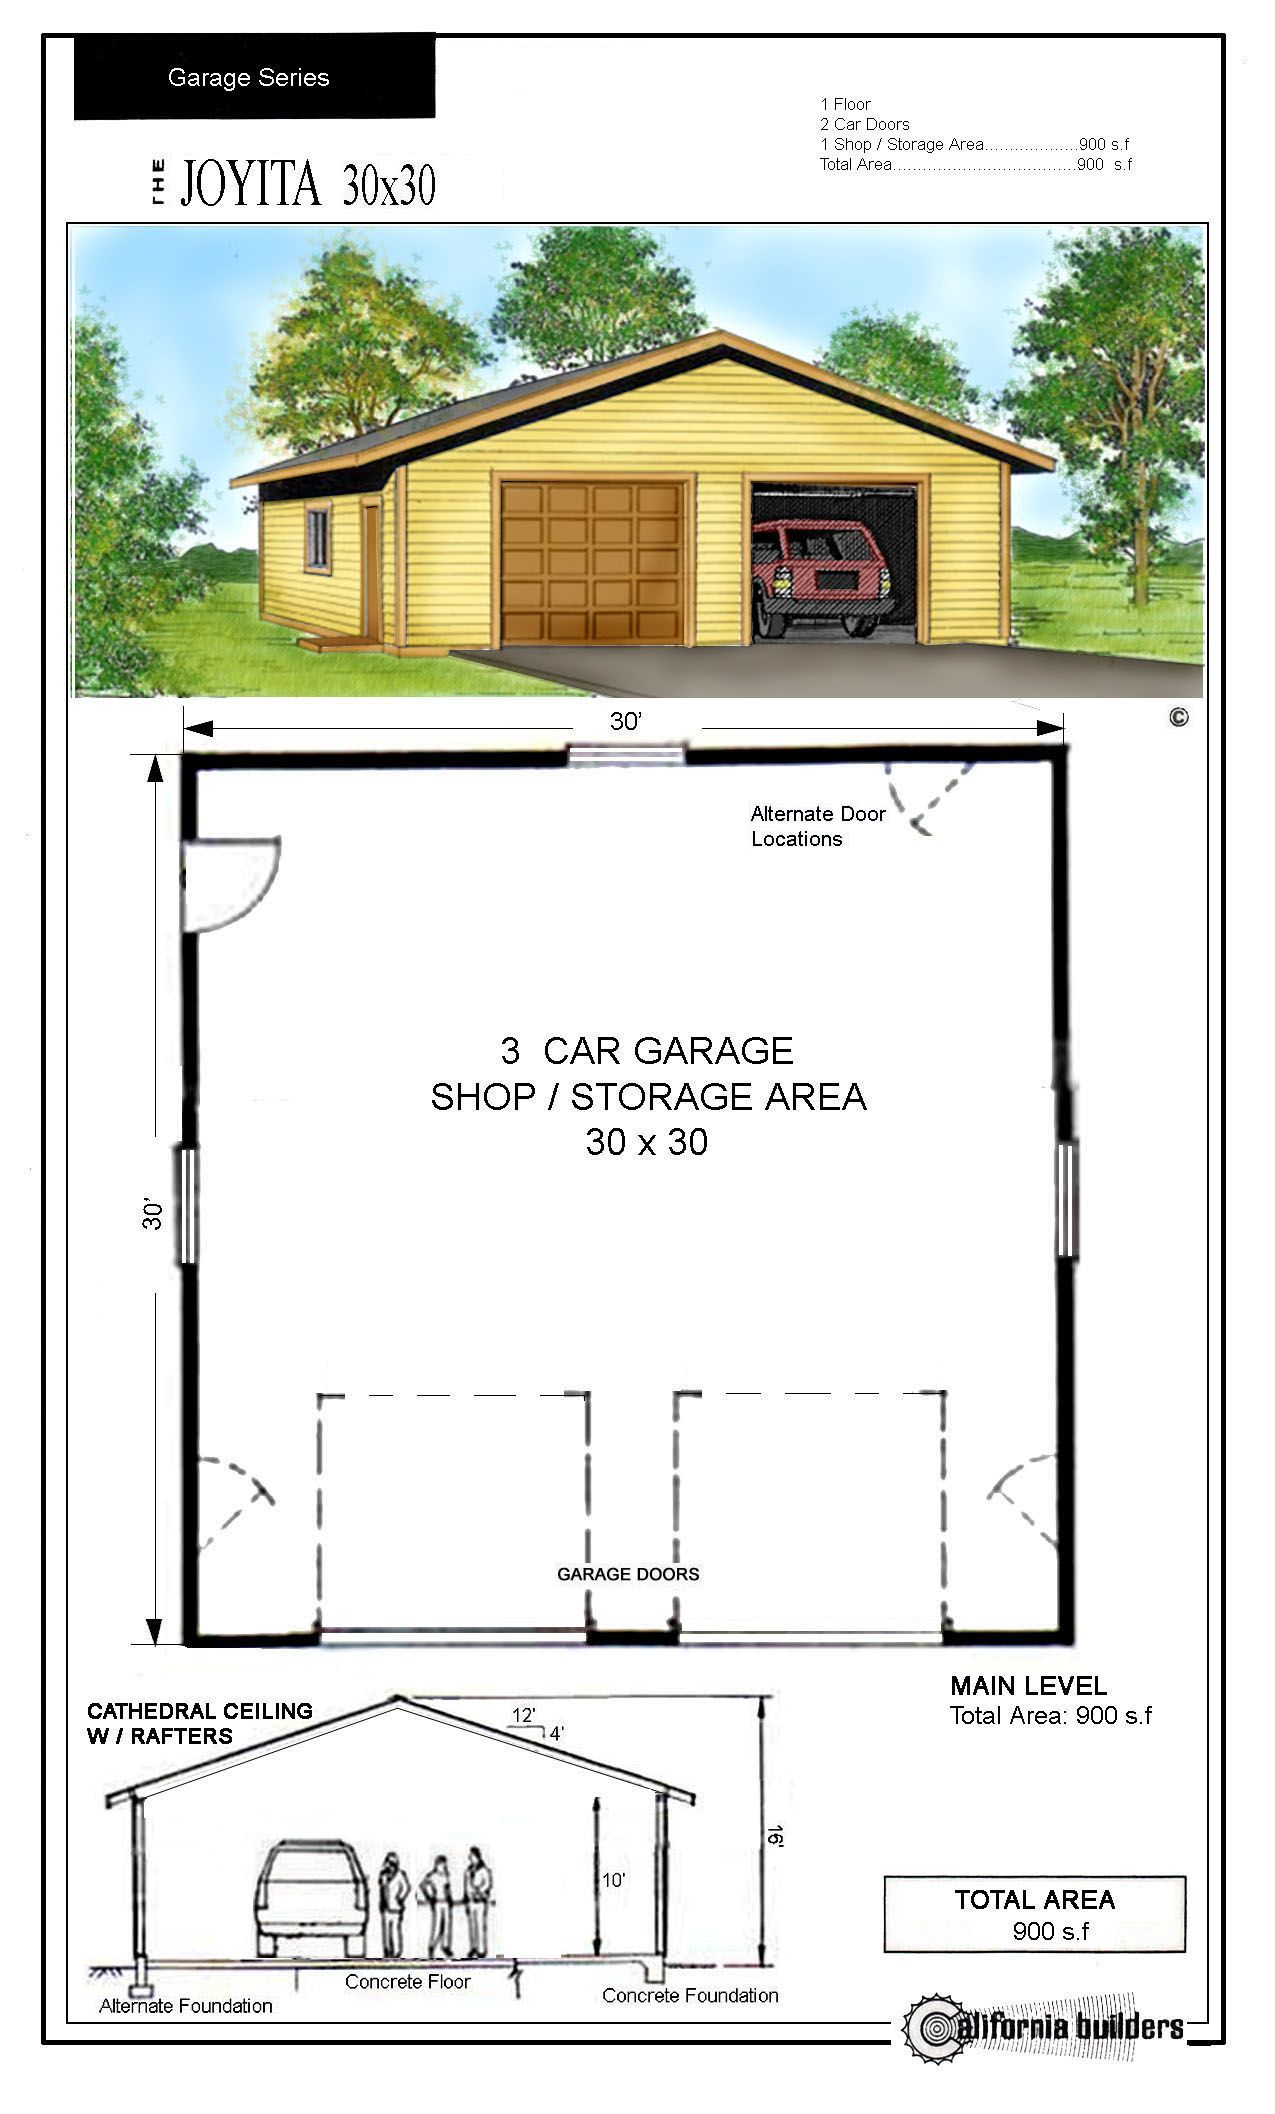 30x30 floor garage plans the laredo 28x39 house for 30x30 2 story house plans